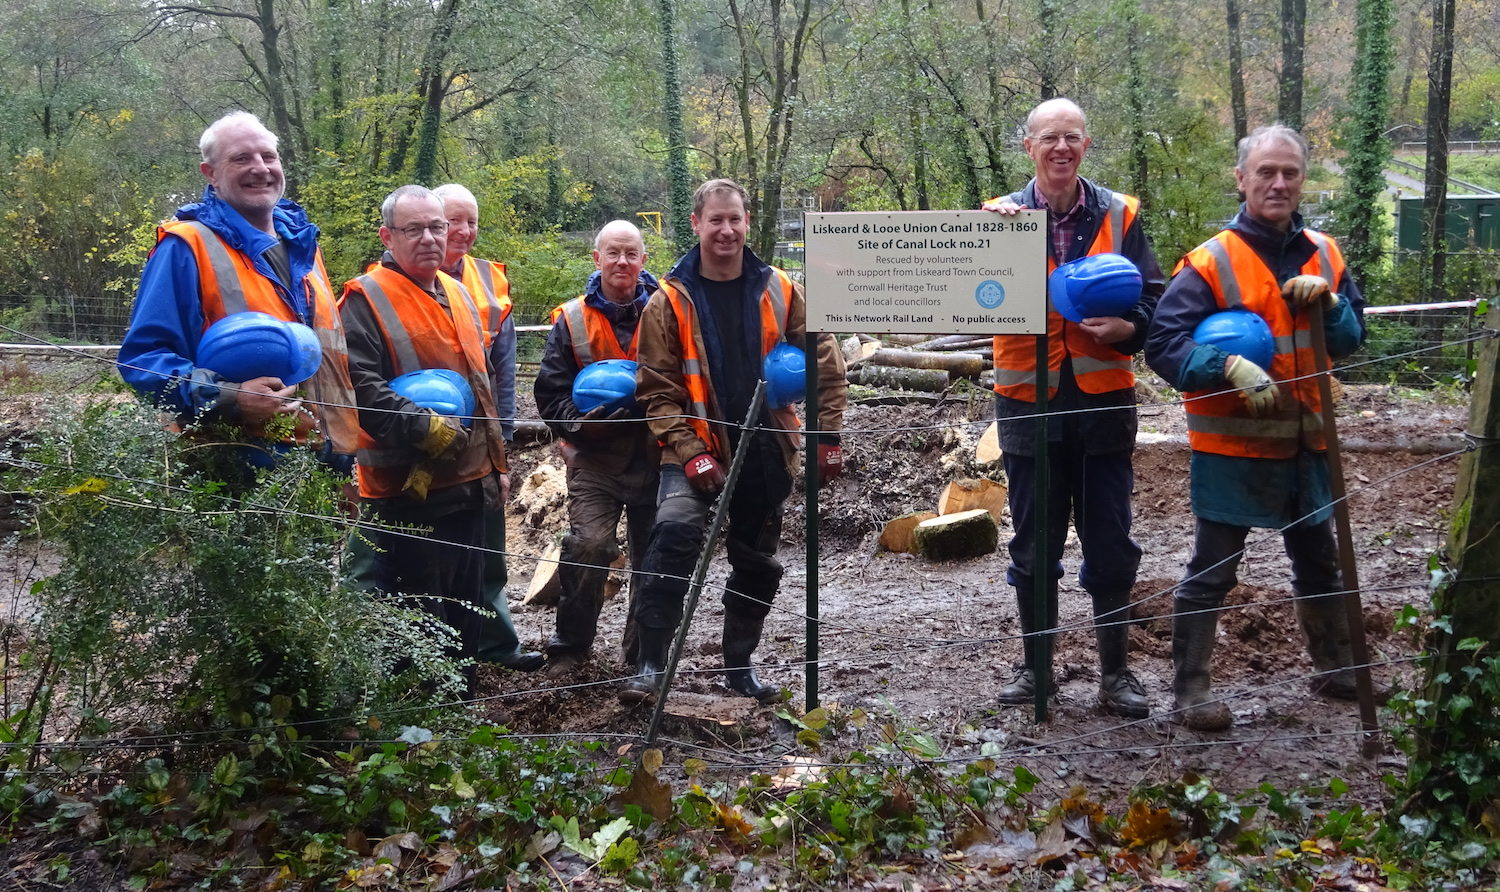 Photograph of group of men in high visibility vests outdoors near muddy canal.